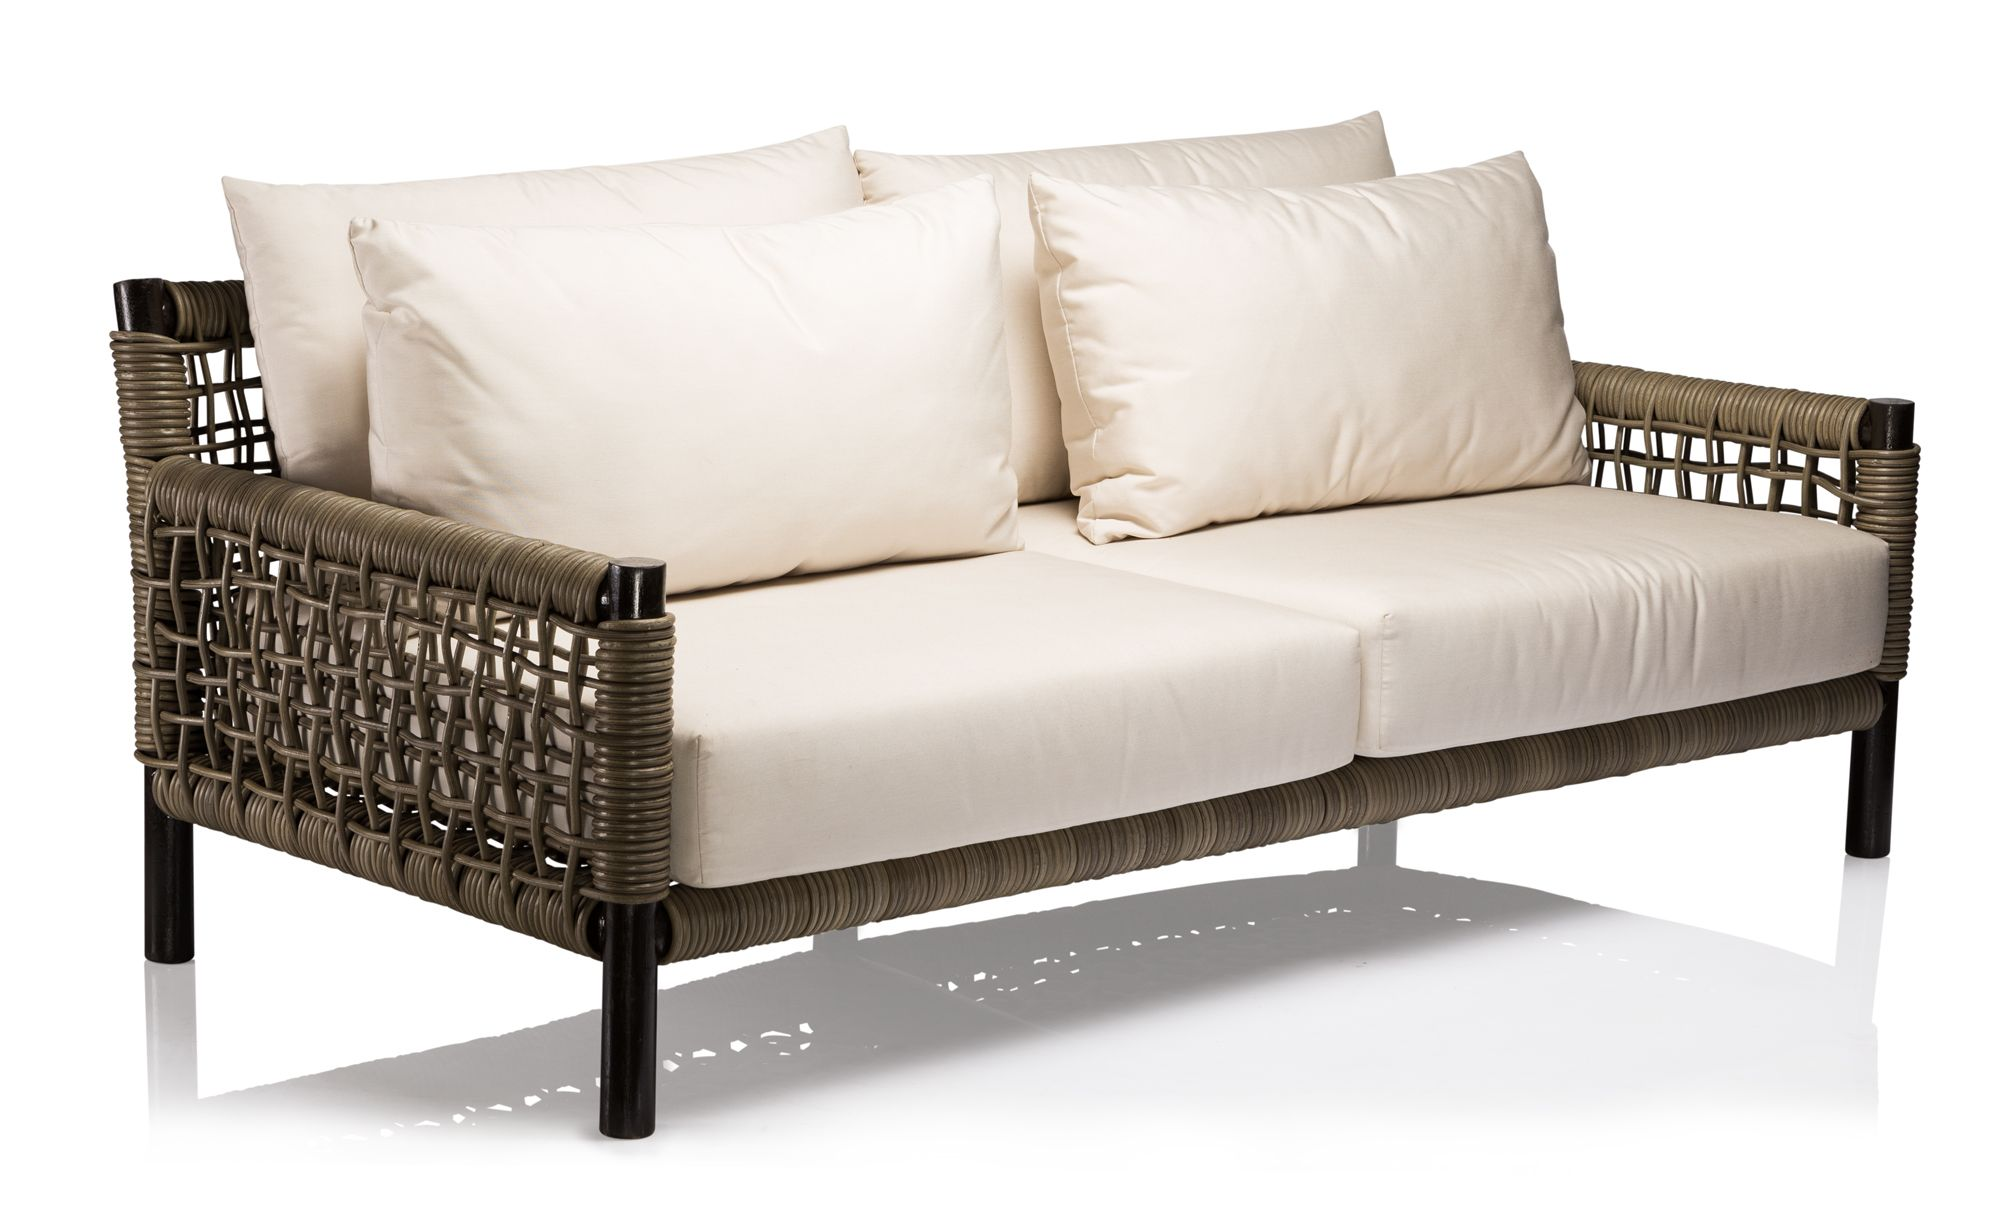 Coco Republic St Lucia Furniture Outdoor Sofa